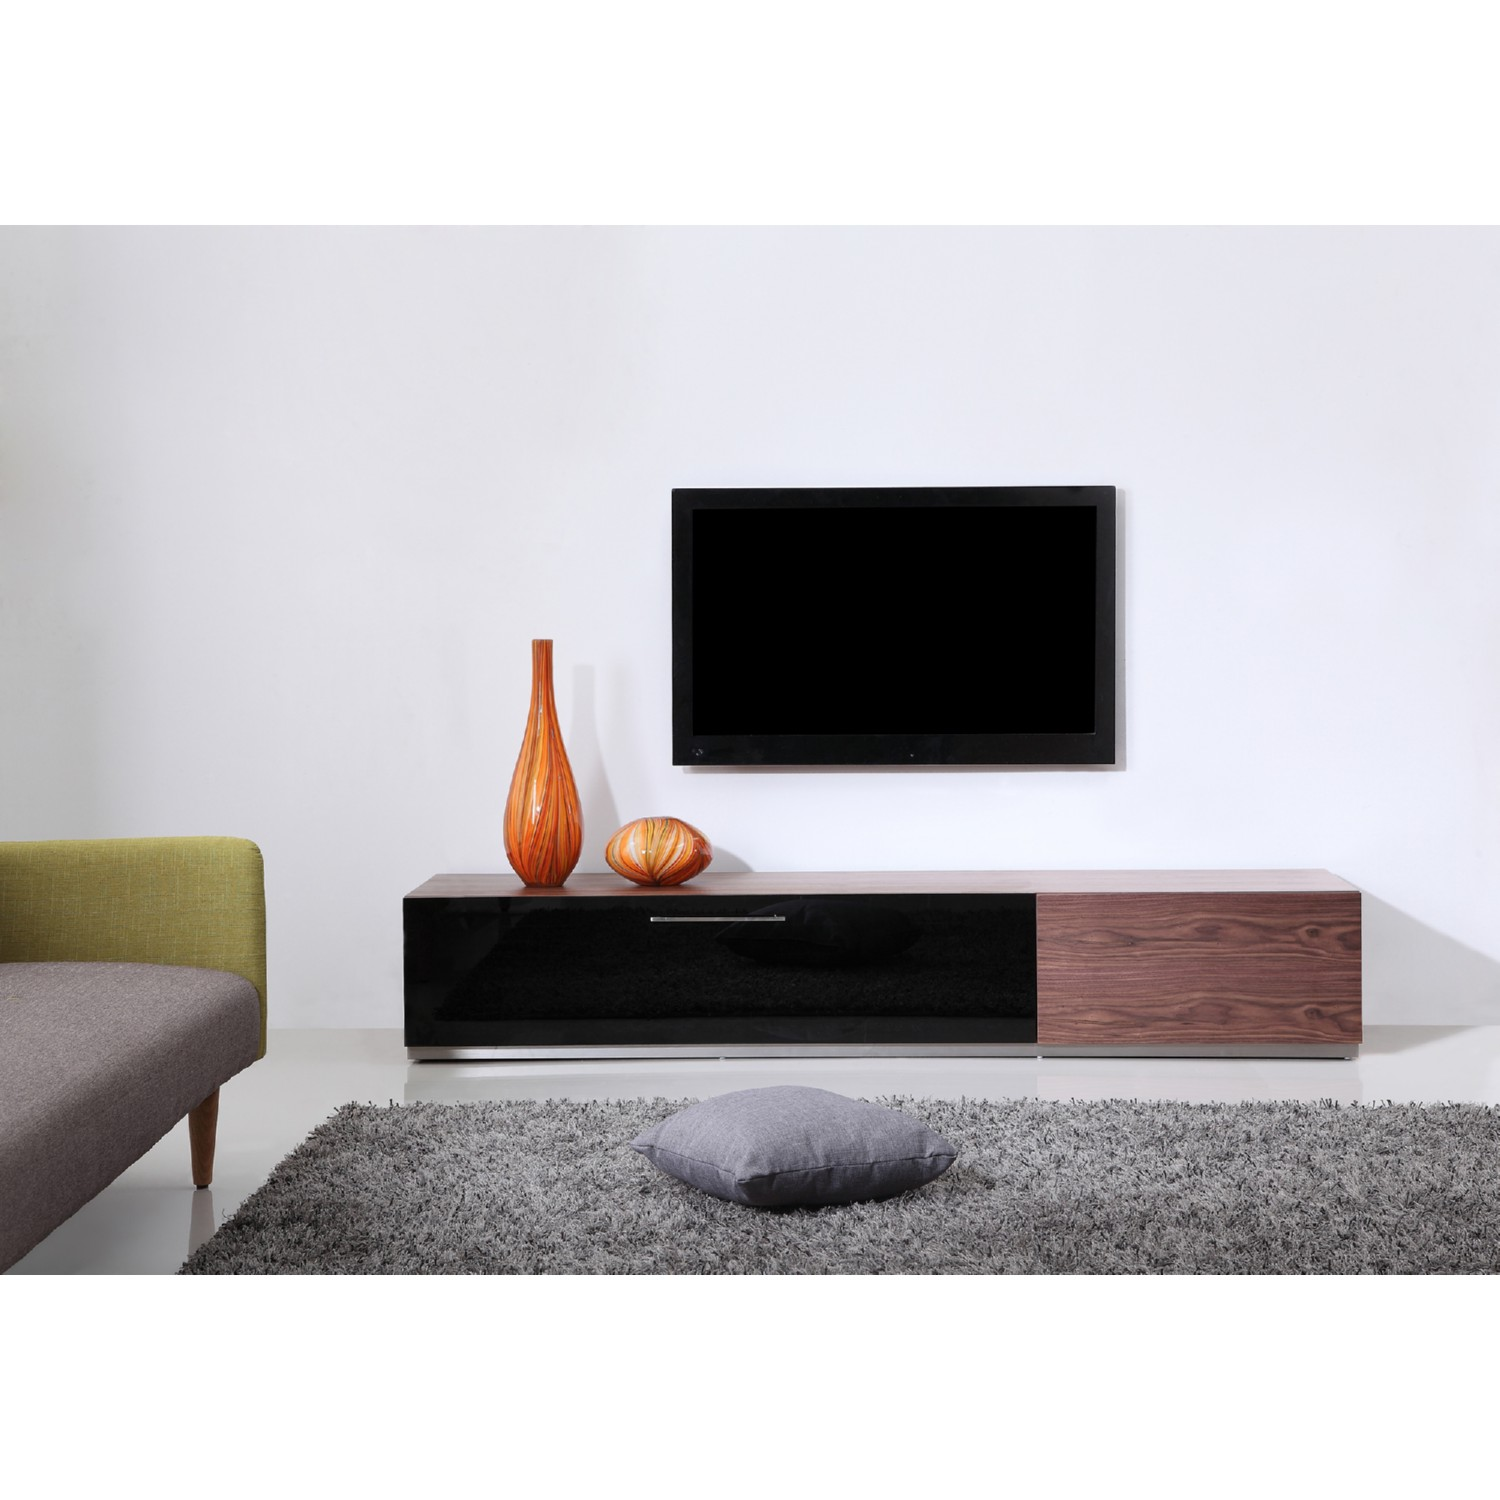 B Modern Furniture Producer 80 Contemporary TV Stand In